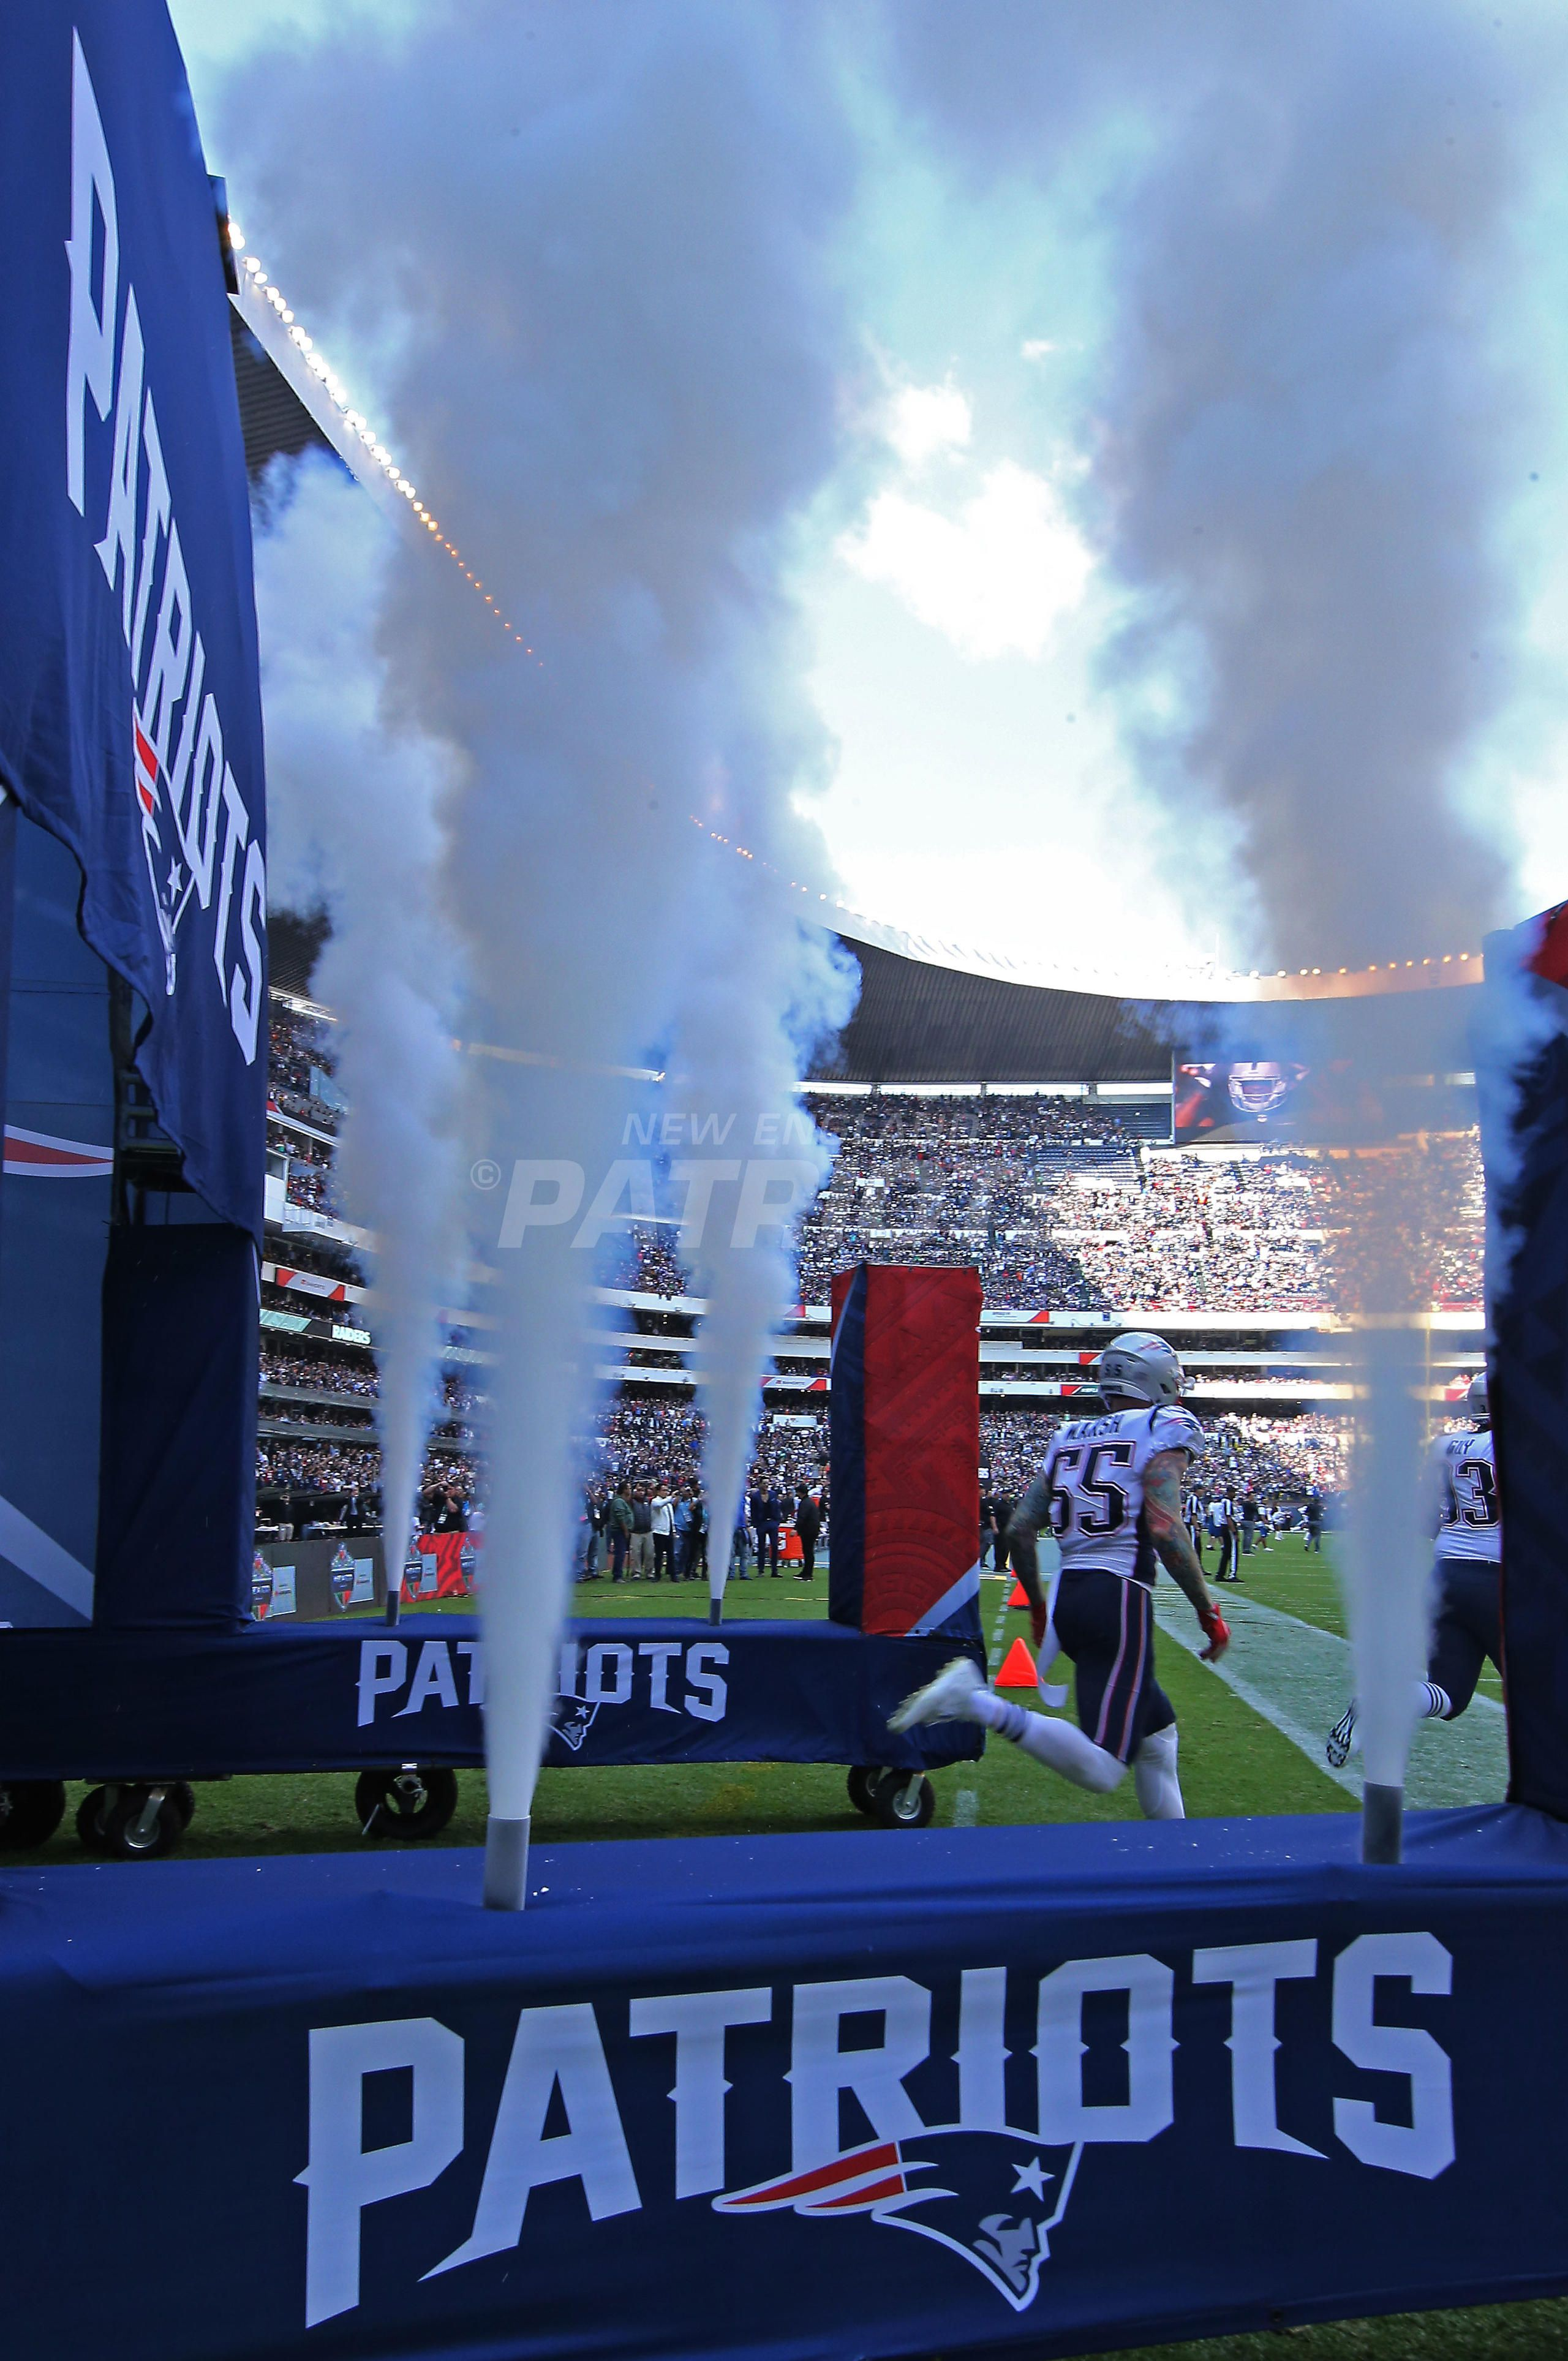 Silverman S Best Presented By Carmax Patriots Raiders 11 19 New England Patriots Patriots England Game